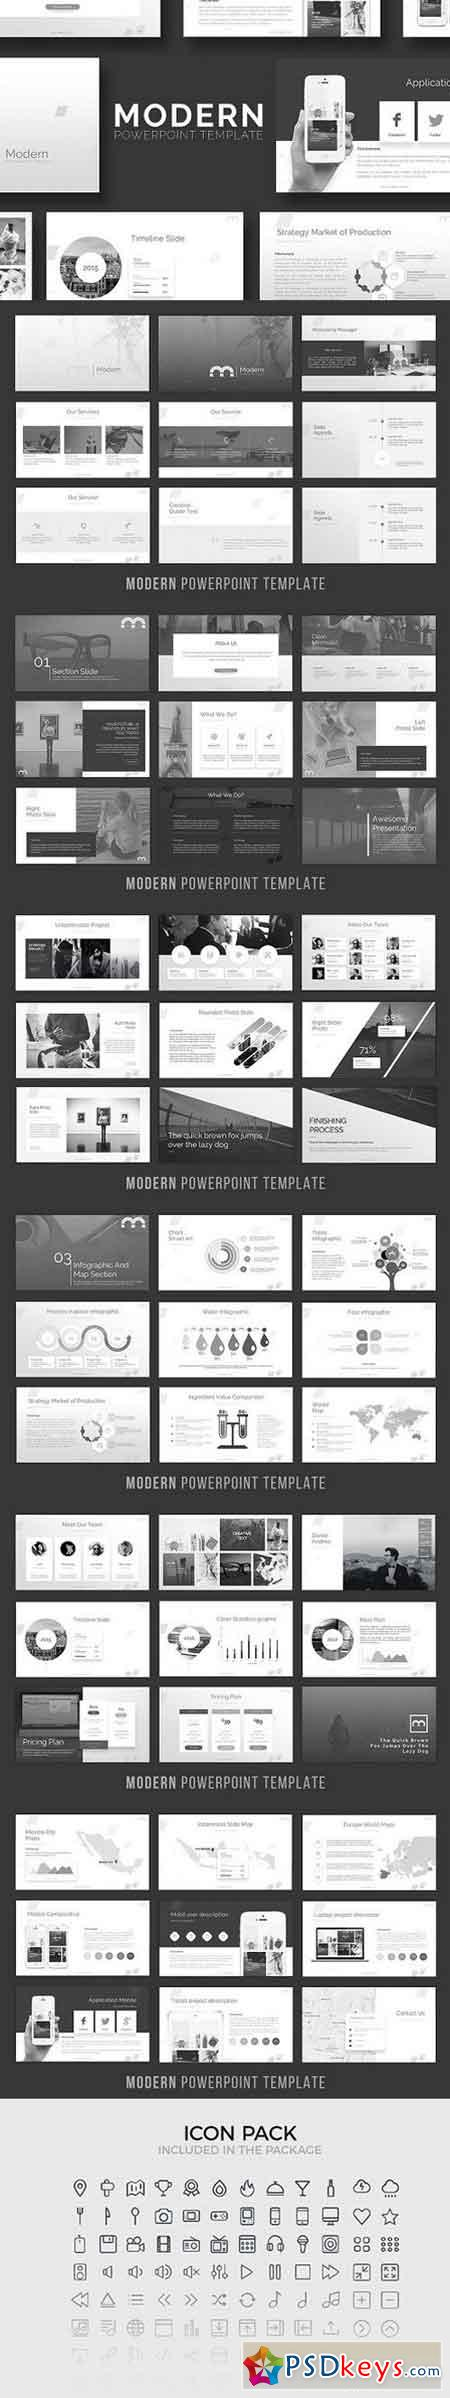 Modern - Powerpoint Template 1351449